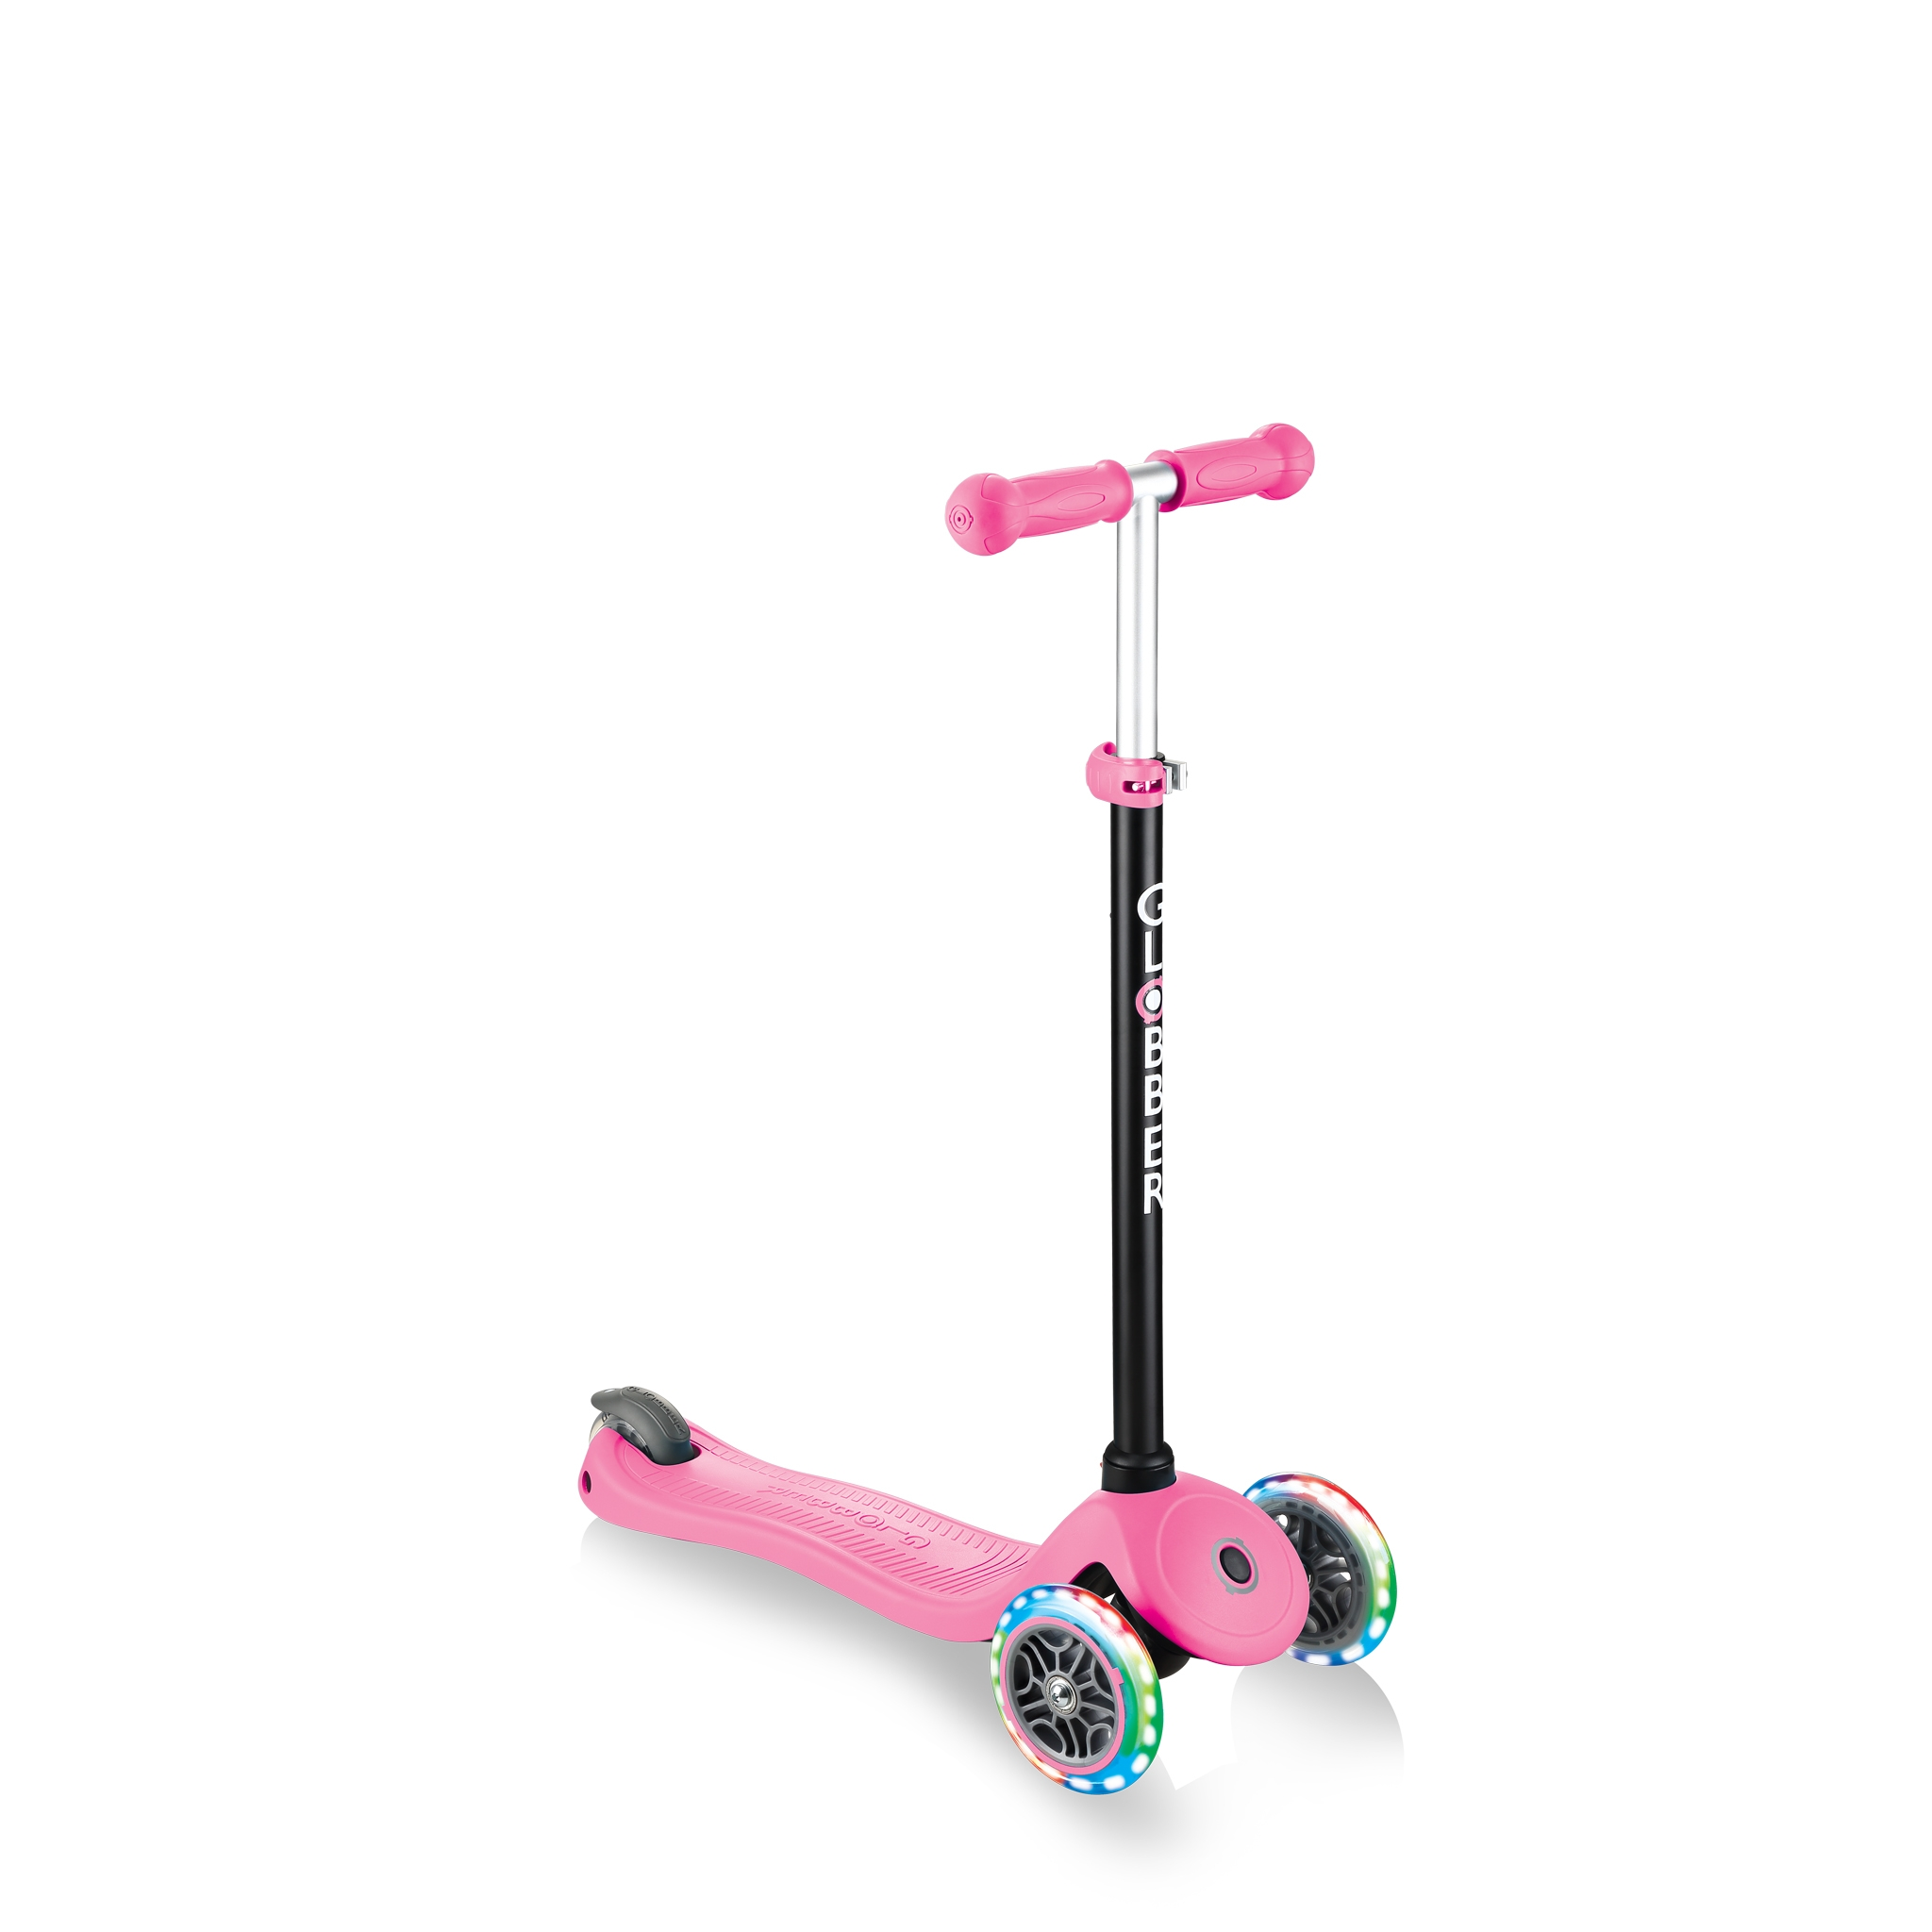 GO-UP-SPORTY-PLUS-LIGHTS-scooter-with-seat-scooter-mode_deep-pink